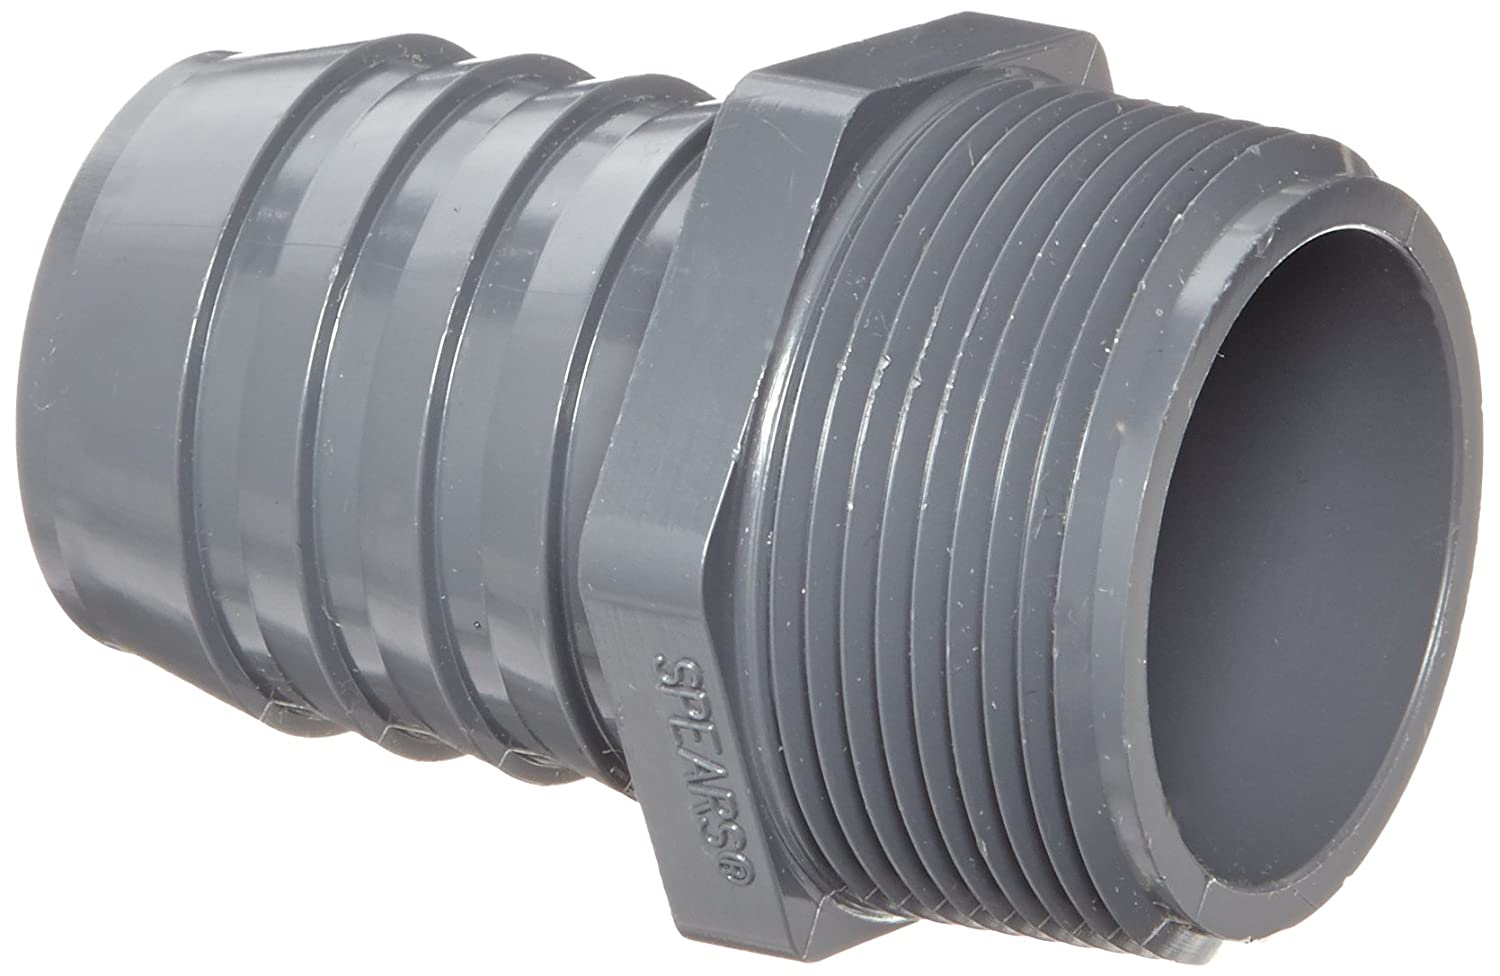 Spears 1436 Series PVC Tube Fitting, Adapter, Schedule 40, Gray, 1-1/2 Barbed x NPT Male Spears Manufacturing 1436-015